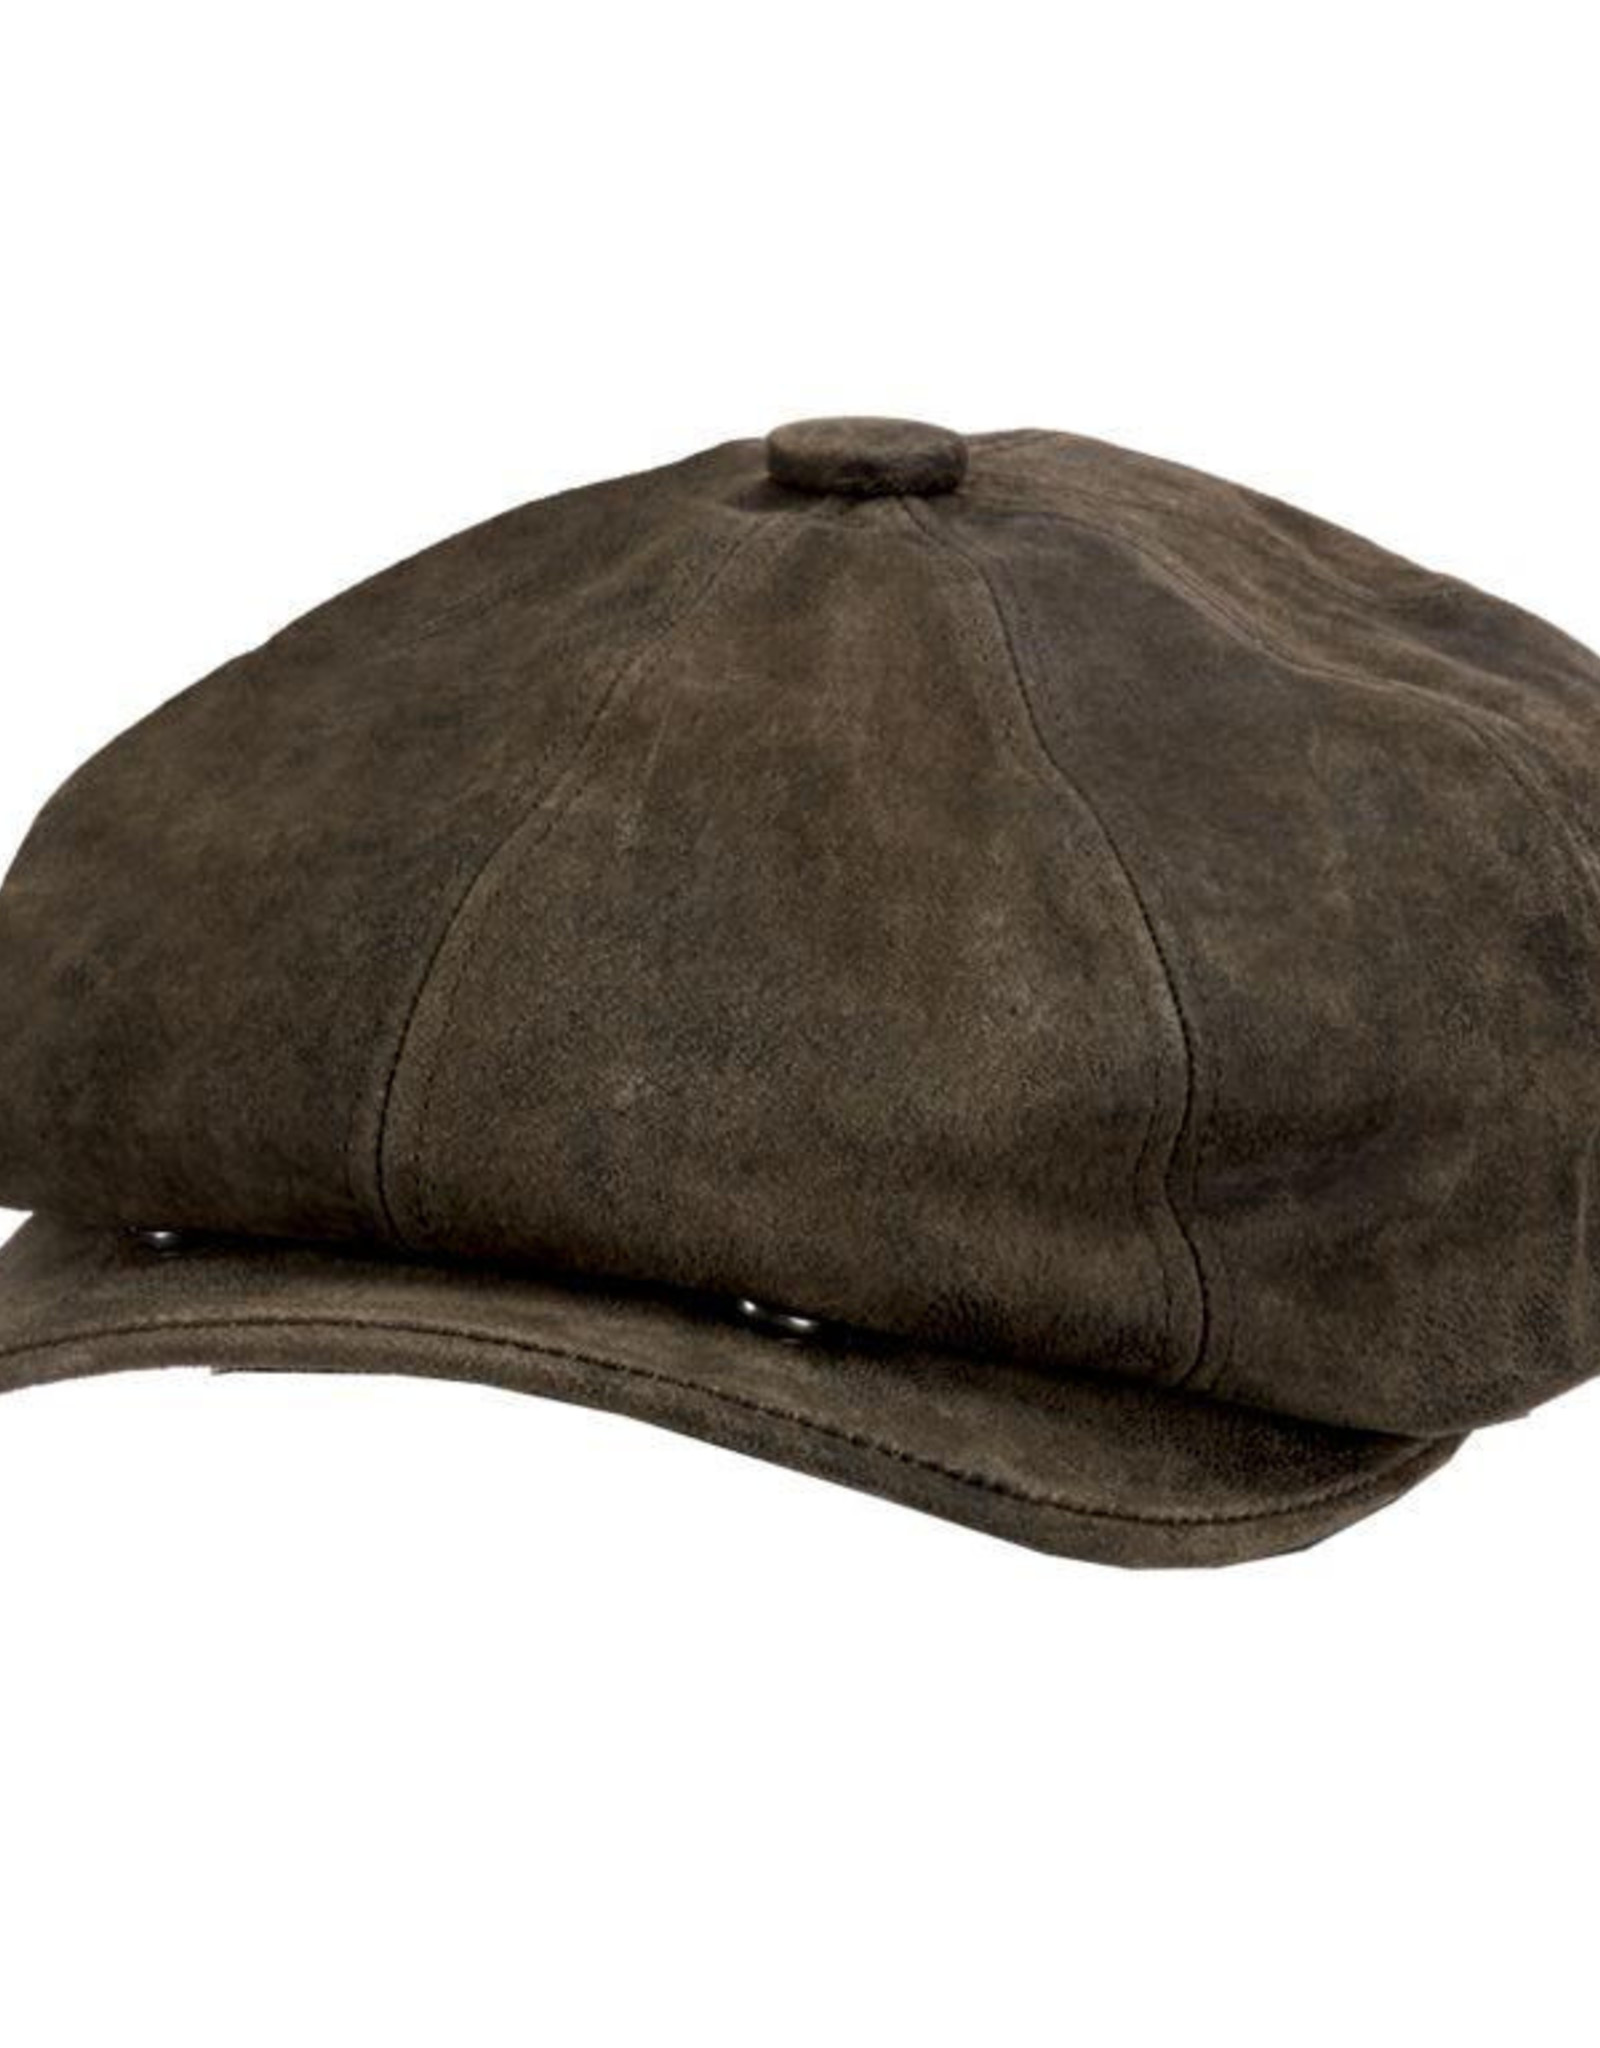 STETSON Hat Stetson 1865 EDISON Leather Suede Chocolate